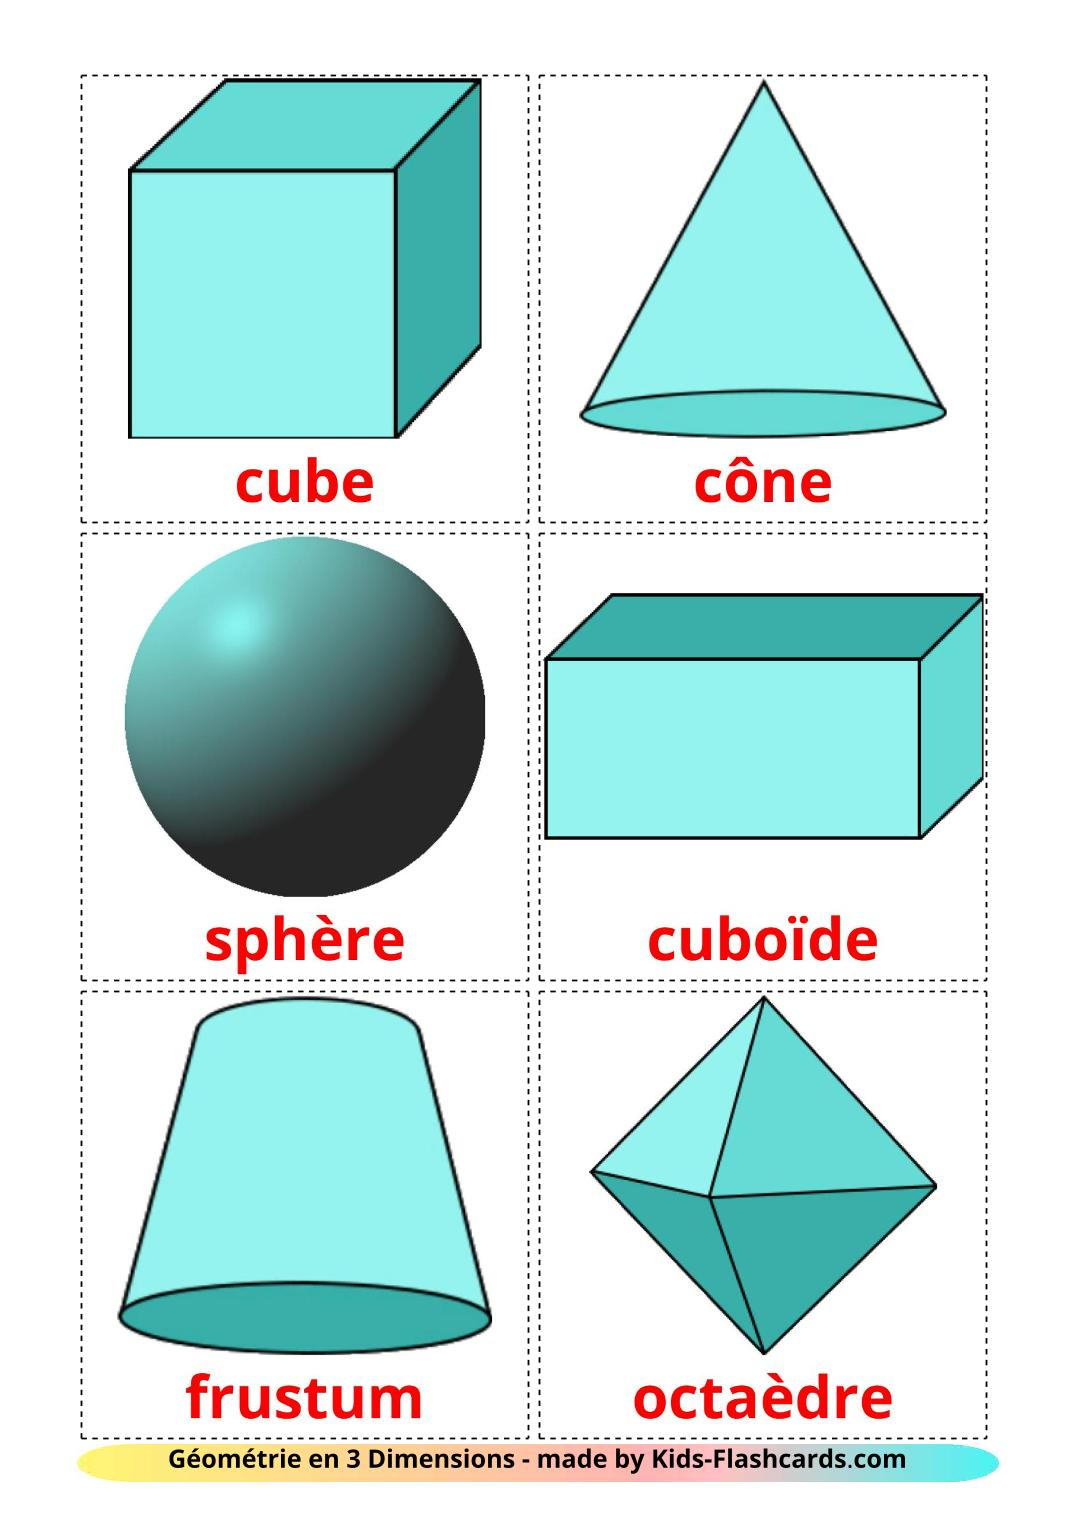 3D Shapes - 17 Free Printable french Flashcards